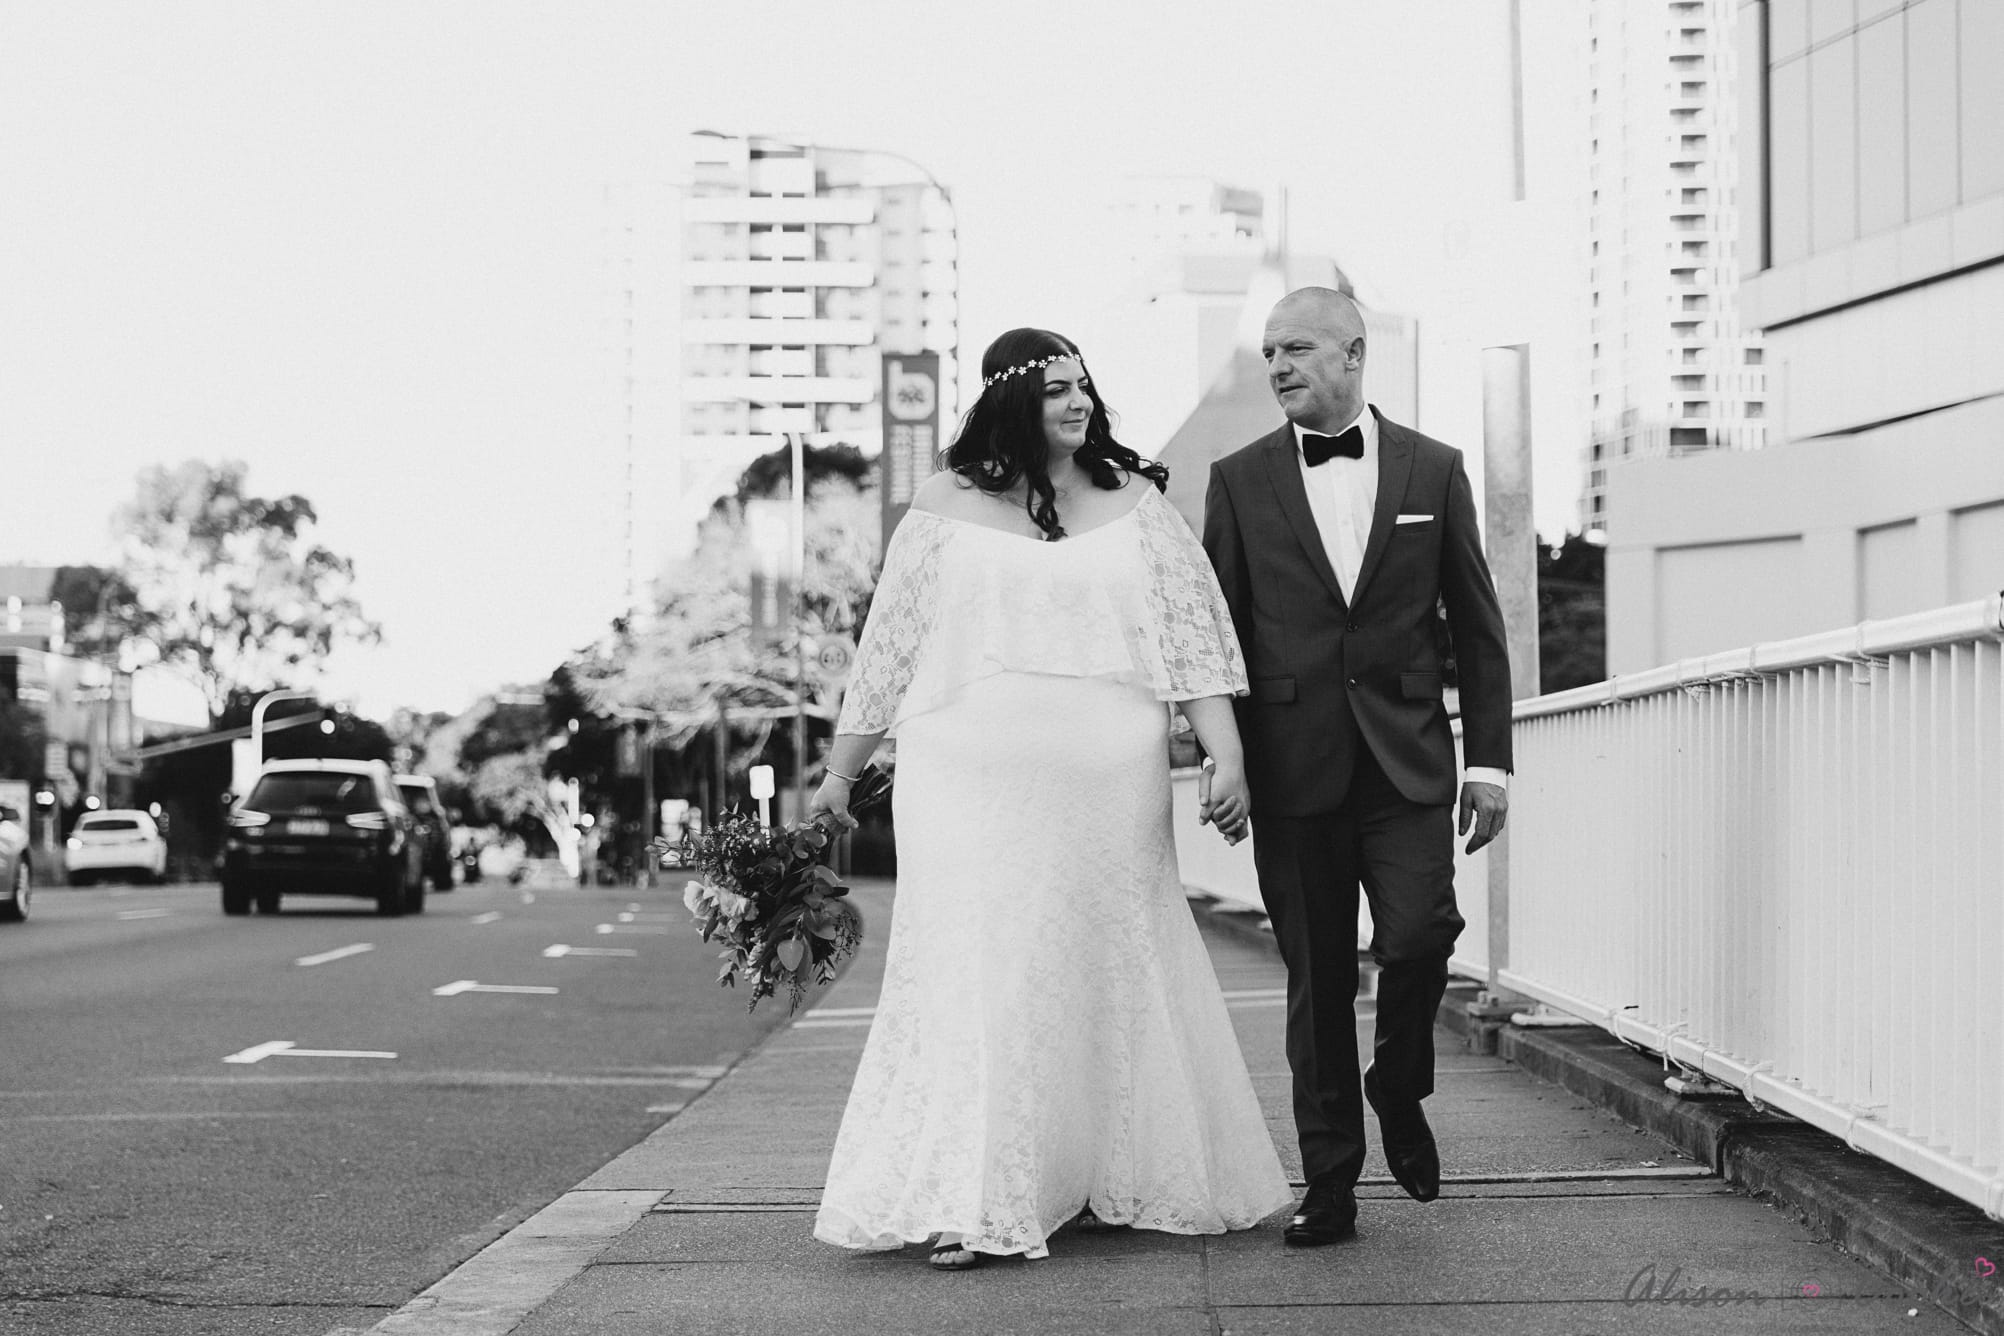 Brisbane Registry Office weddings